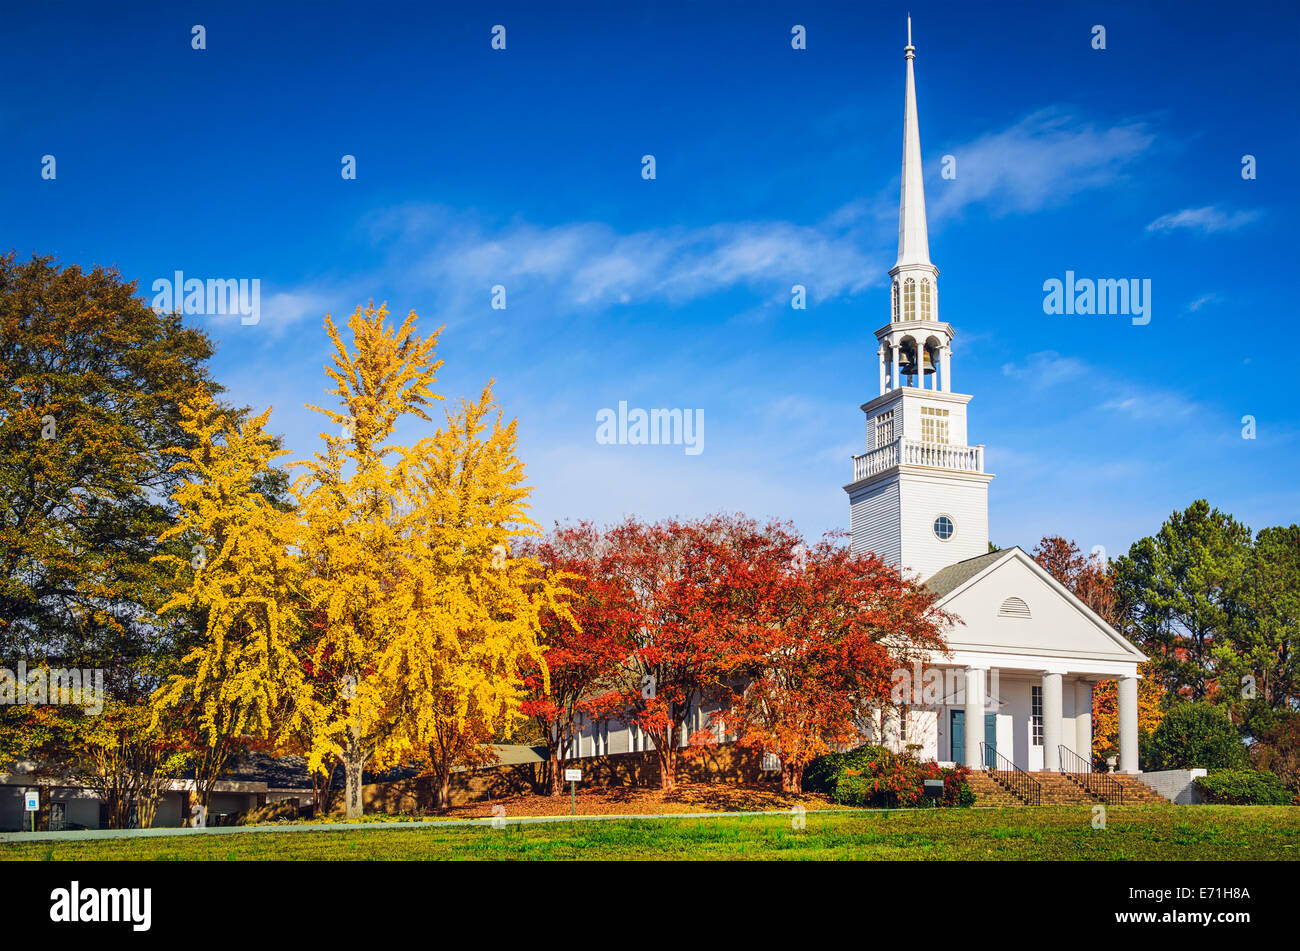 Traditional southern church in the autumn season. - Stock Image